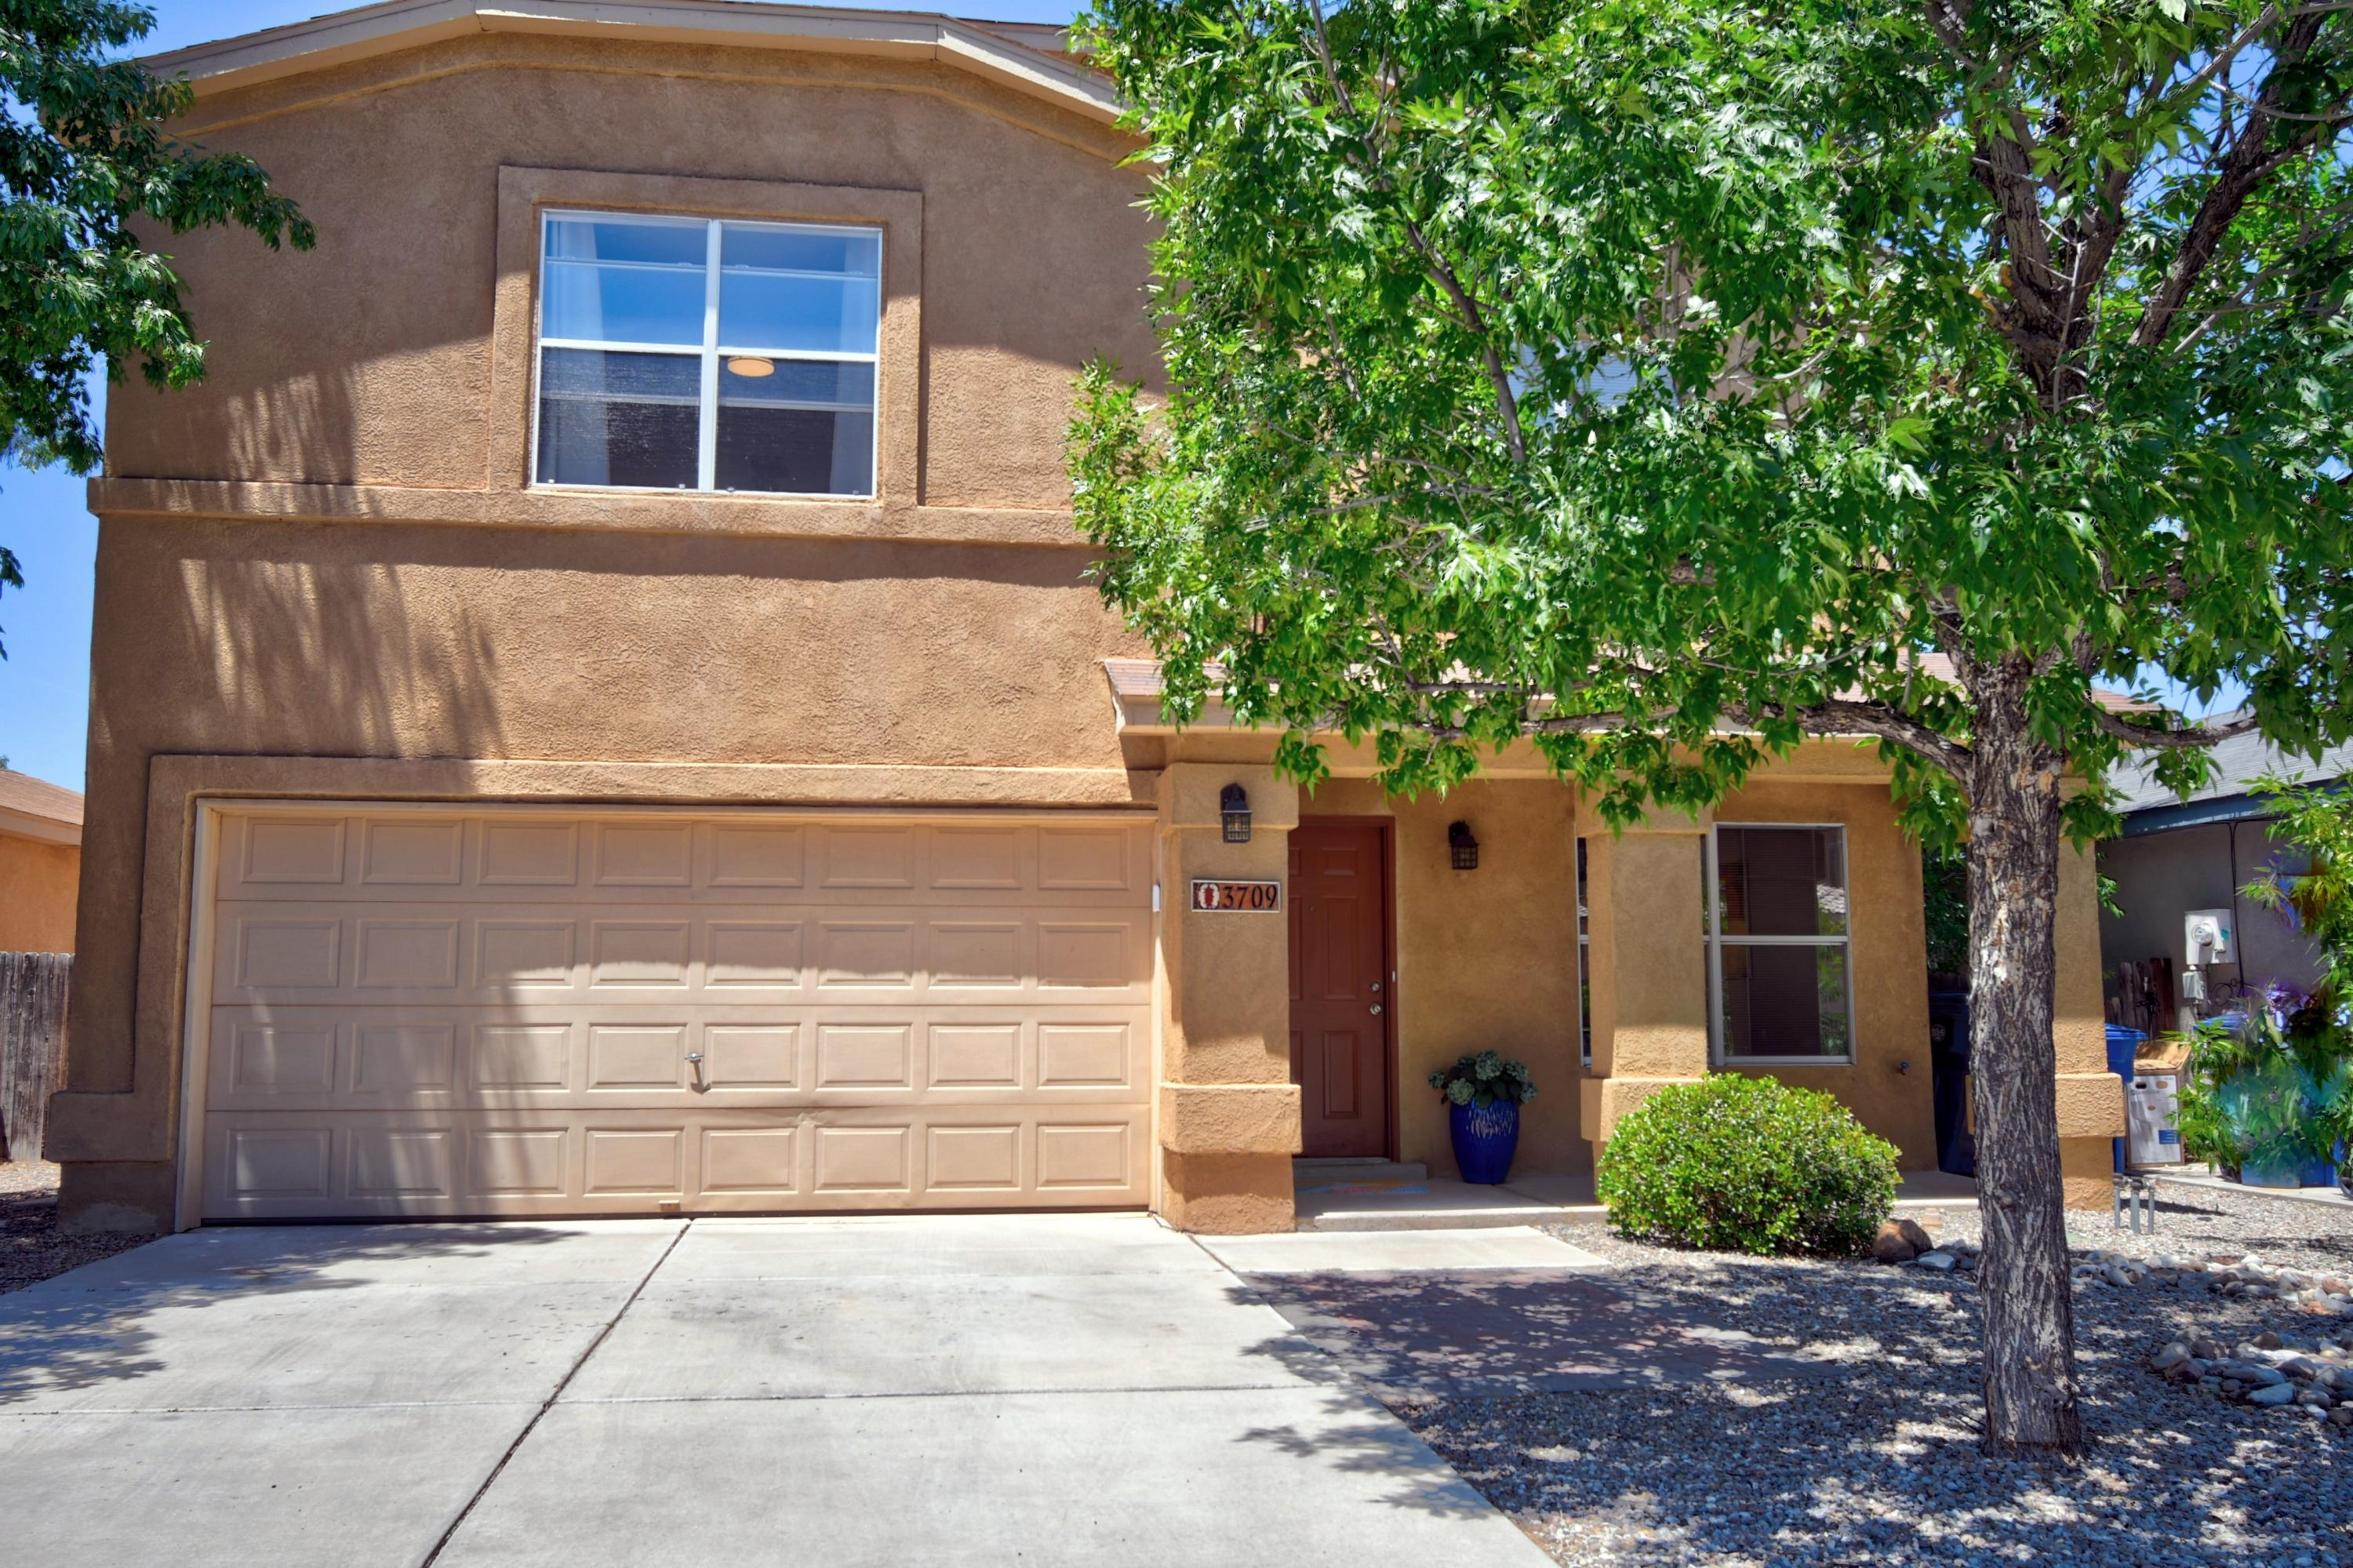 3709 SUMMIT PARK Road NW, Albuquerque, NM 87120 - Albuquerque, NM real estate listing